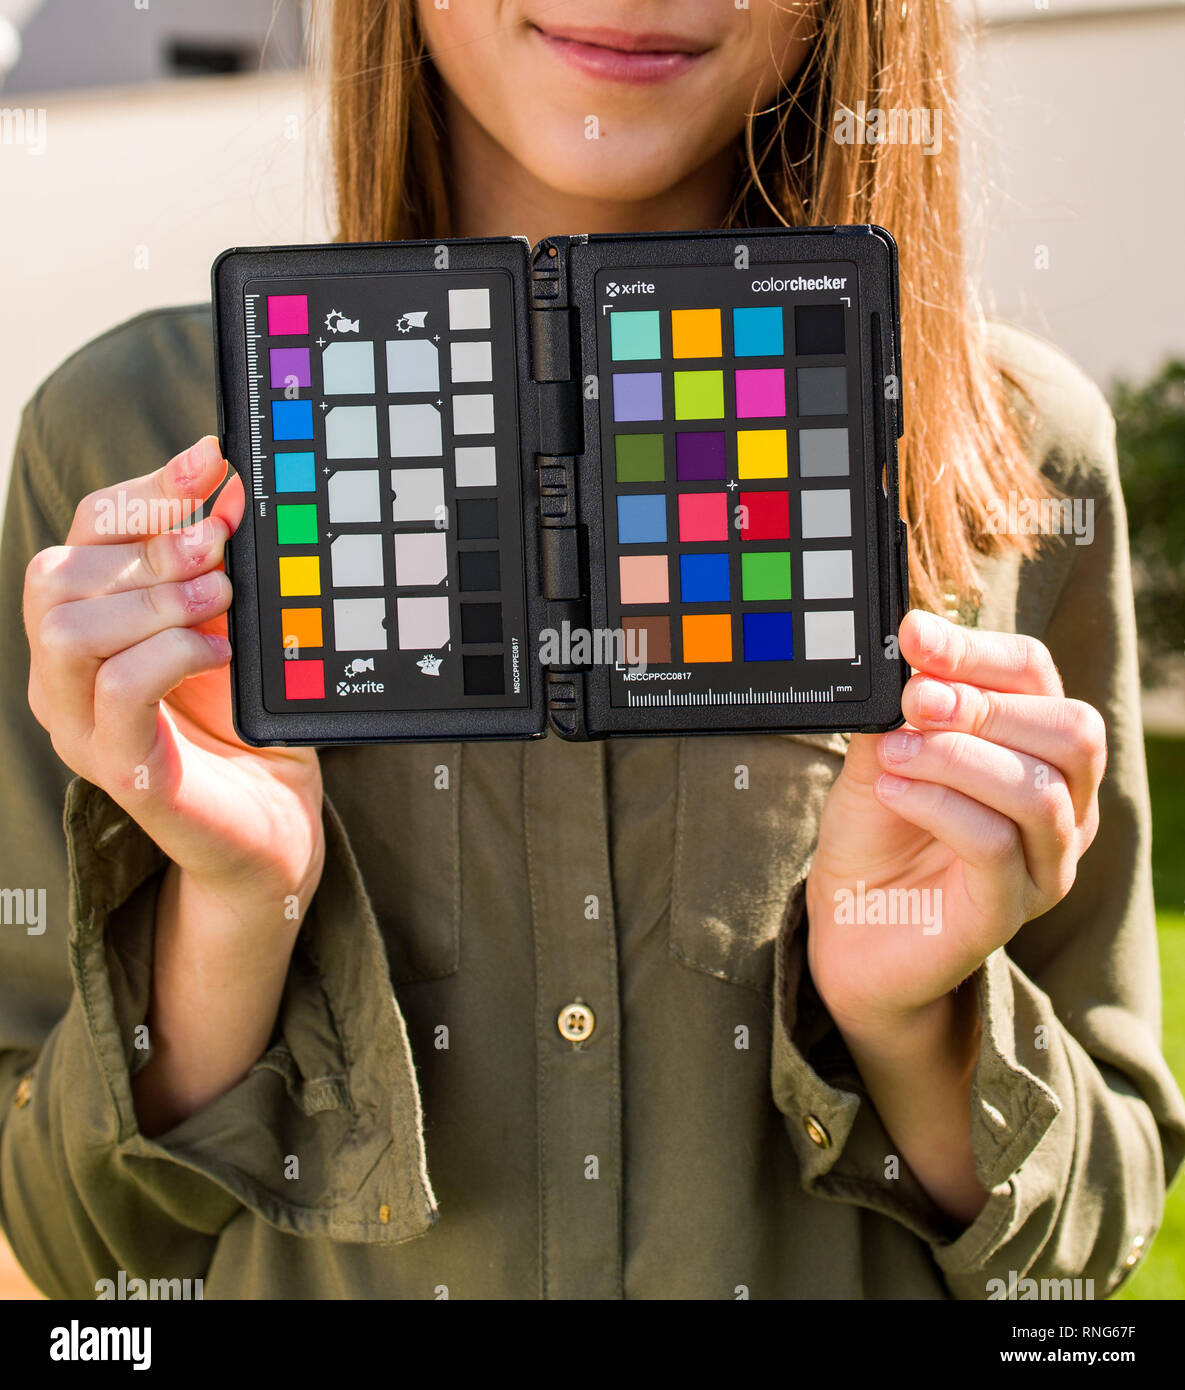 PARIS, FRANCE - SEP 30, 2018: Professional model holding Color Passport by X-Rite Color Reference Targets and camera calibration sfotware before the professional photo session shooting Stock Photo